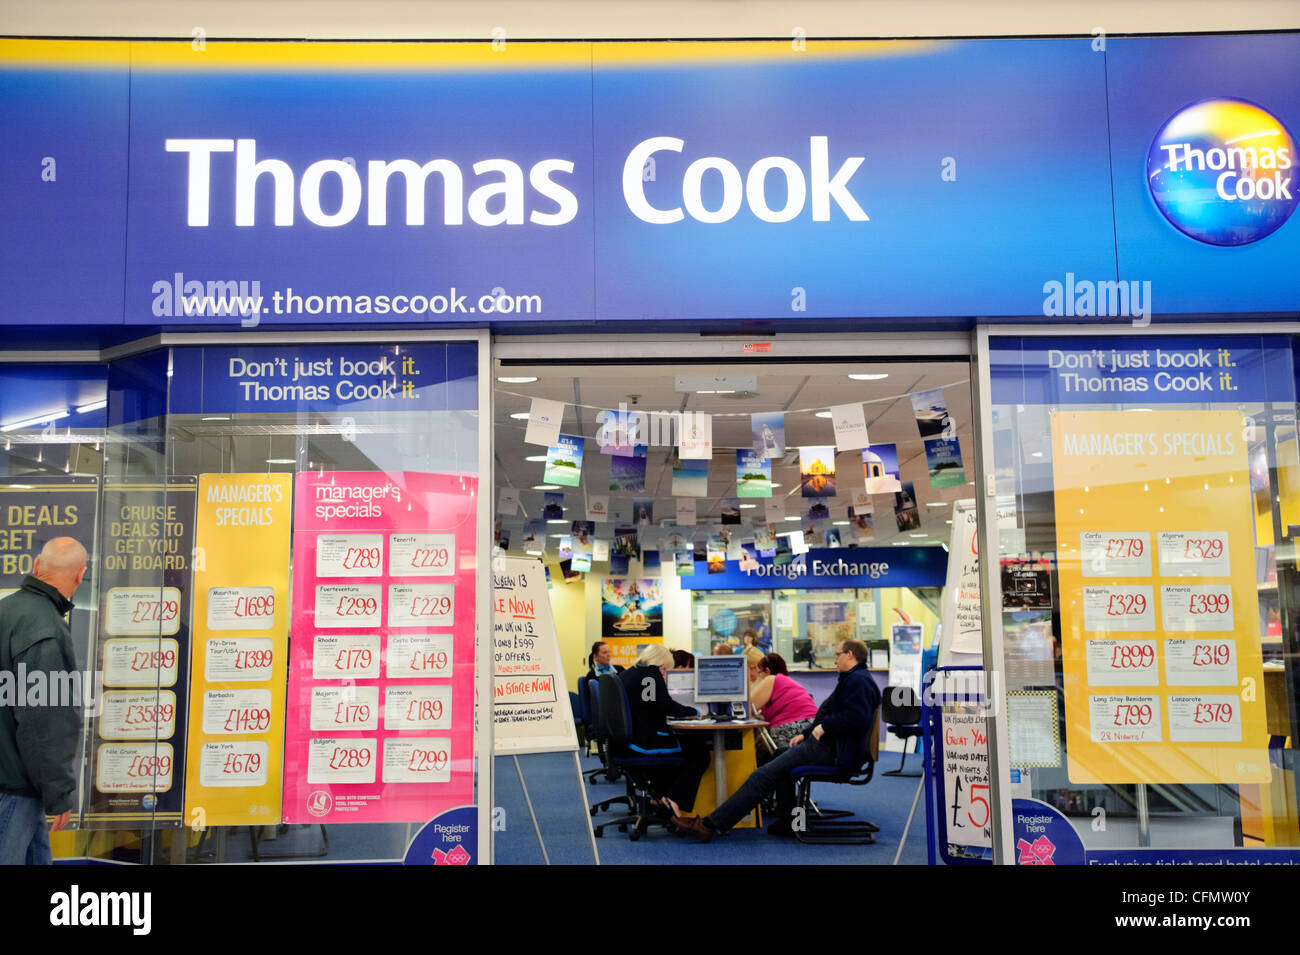 Thomas Cook travel agents at Merry Hill shopping centre, West Midlands, UK. - Stock Image